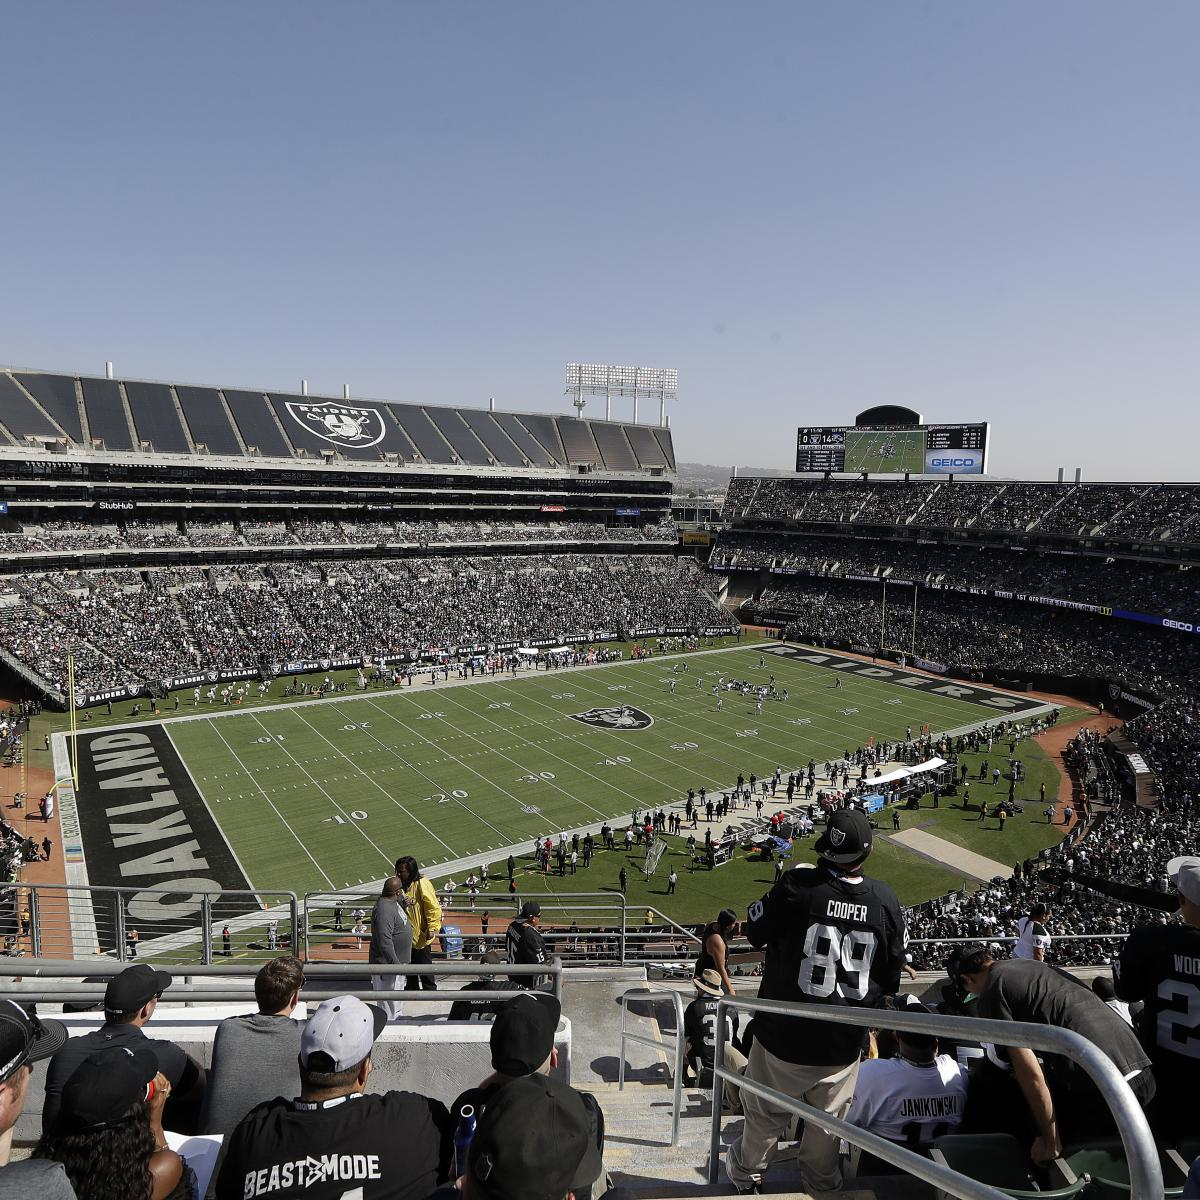 San Diego Chargers Game Channel: Chargers-Raiders Game To Be Played In Oakland Despite